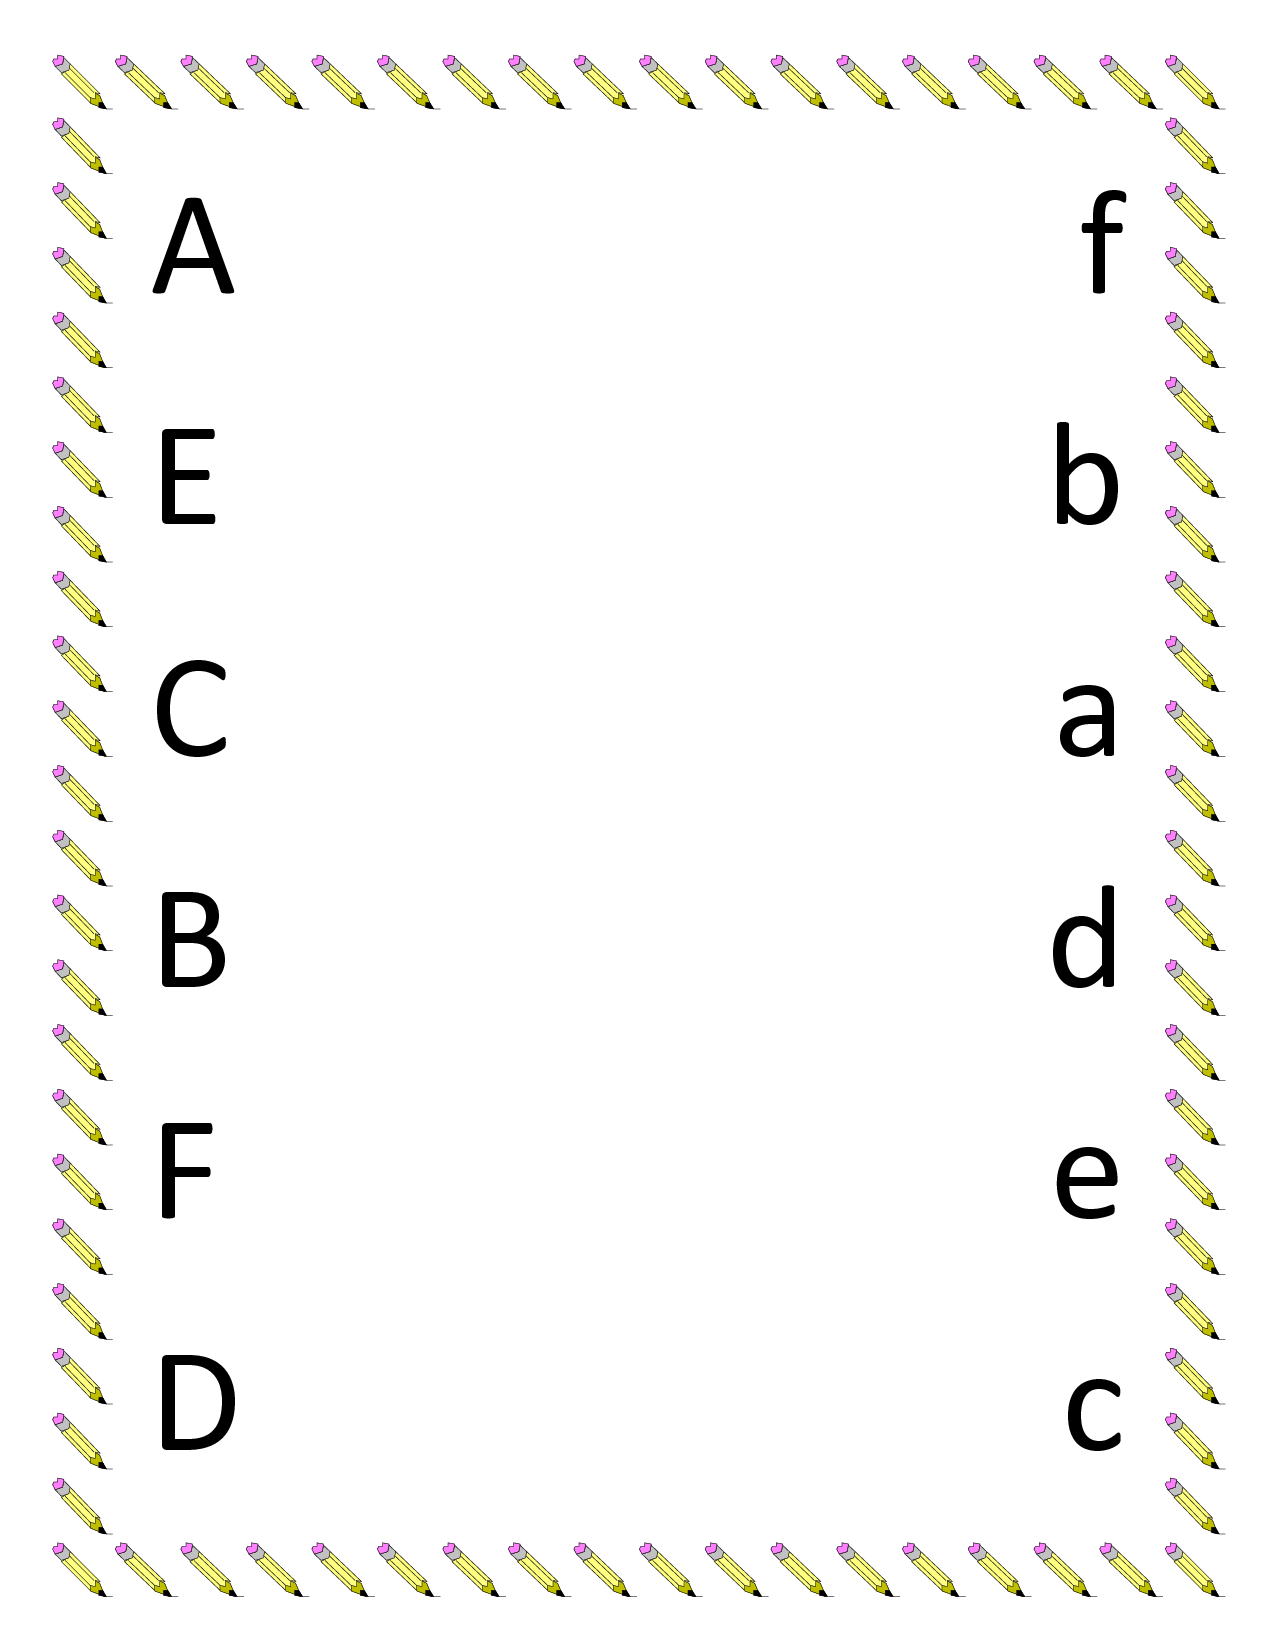 kindergarten worksheets | Preschool worksheets | Printables for ...